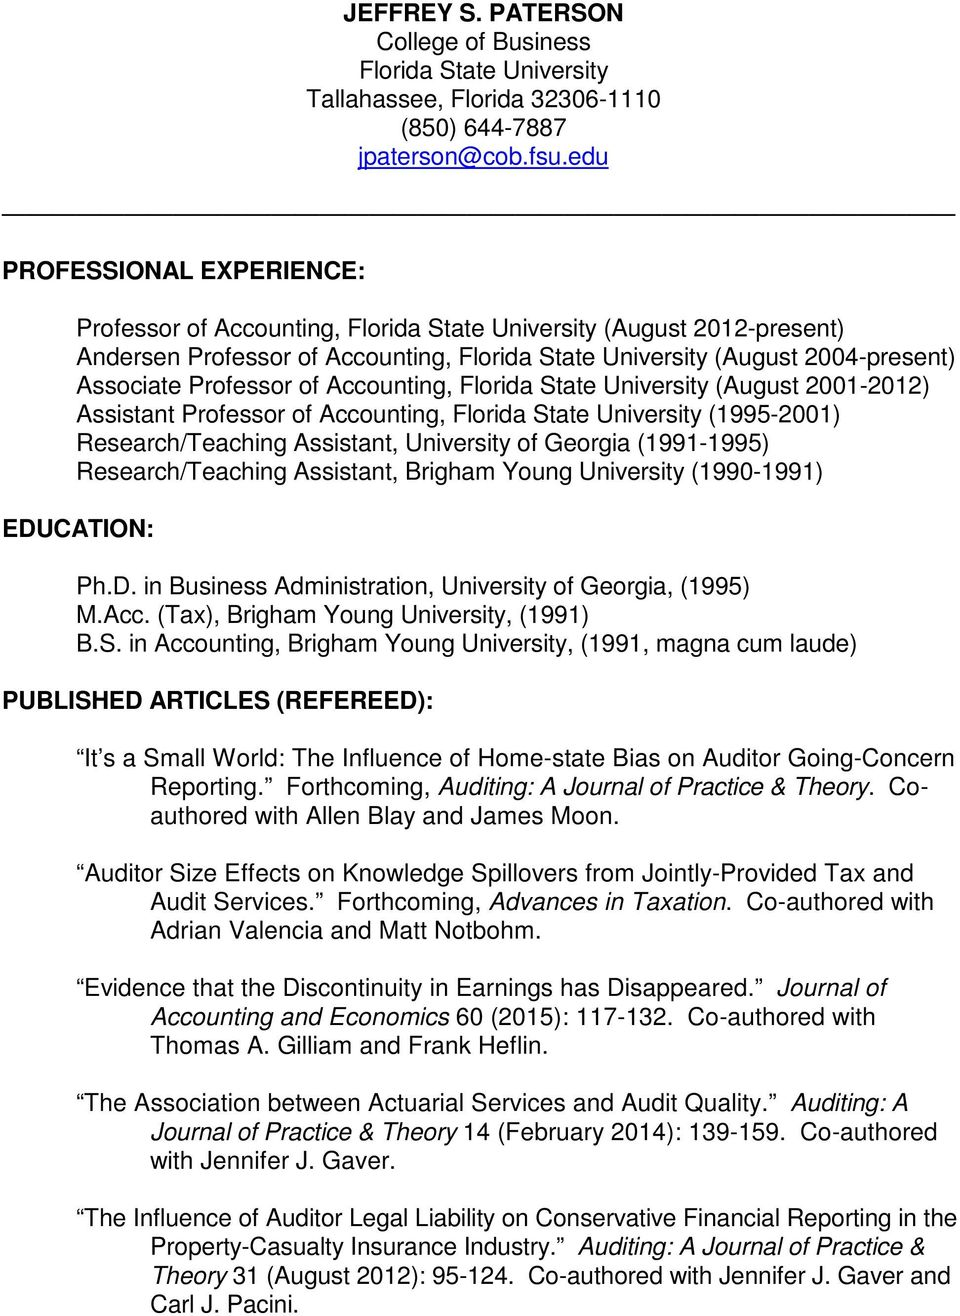 Professor of Accounting, Florida State University (August 2001-2012) Assistant Professor of Accounting, Florida State University (1995-2001) Research/Teaching Assistant, University of Georgia